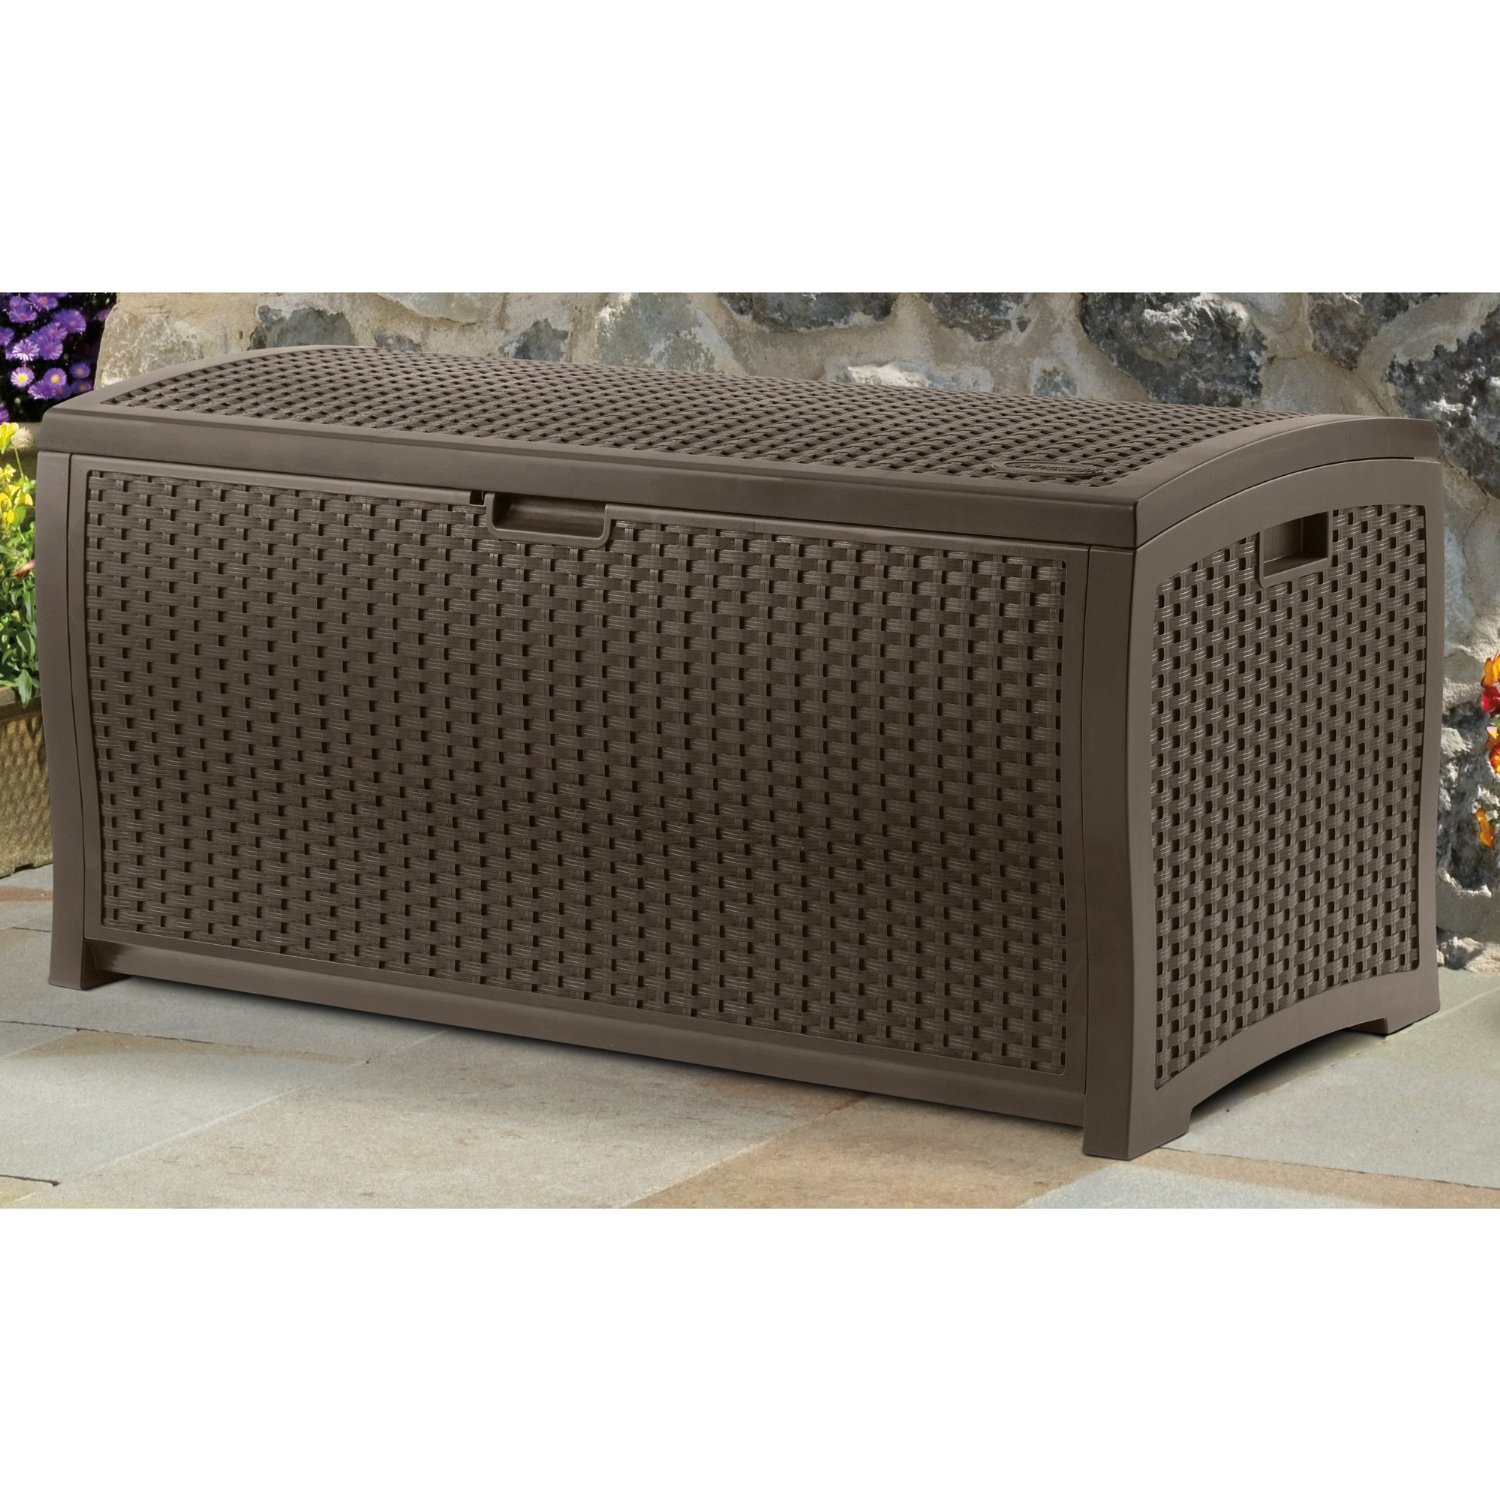 DBW9200 Mocha Wicker Suncast Deck Box Ideas for patio furniture ideas